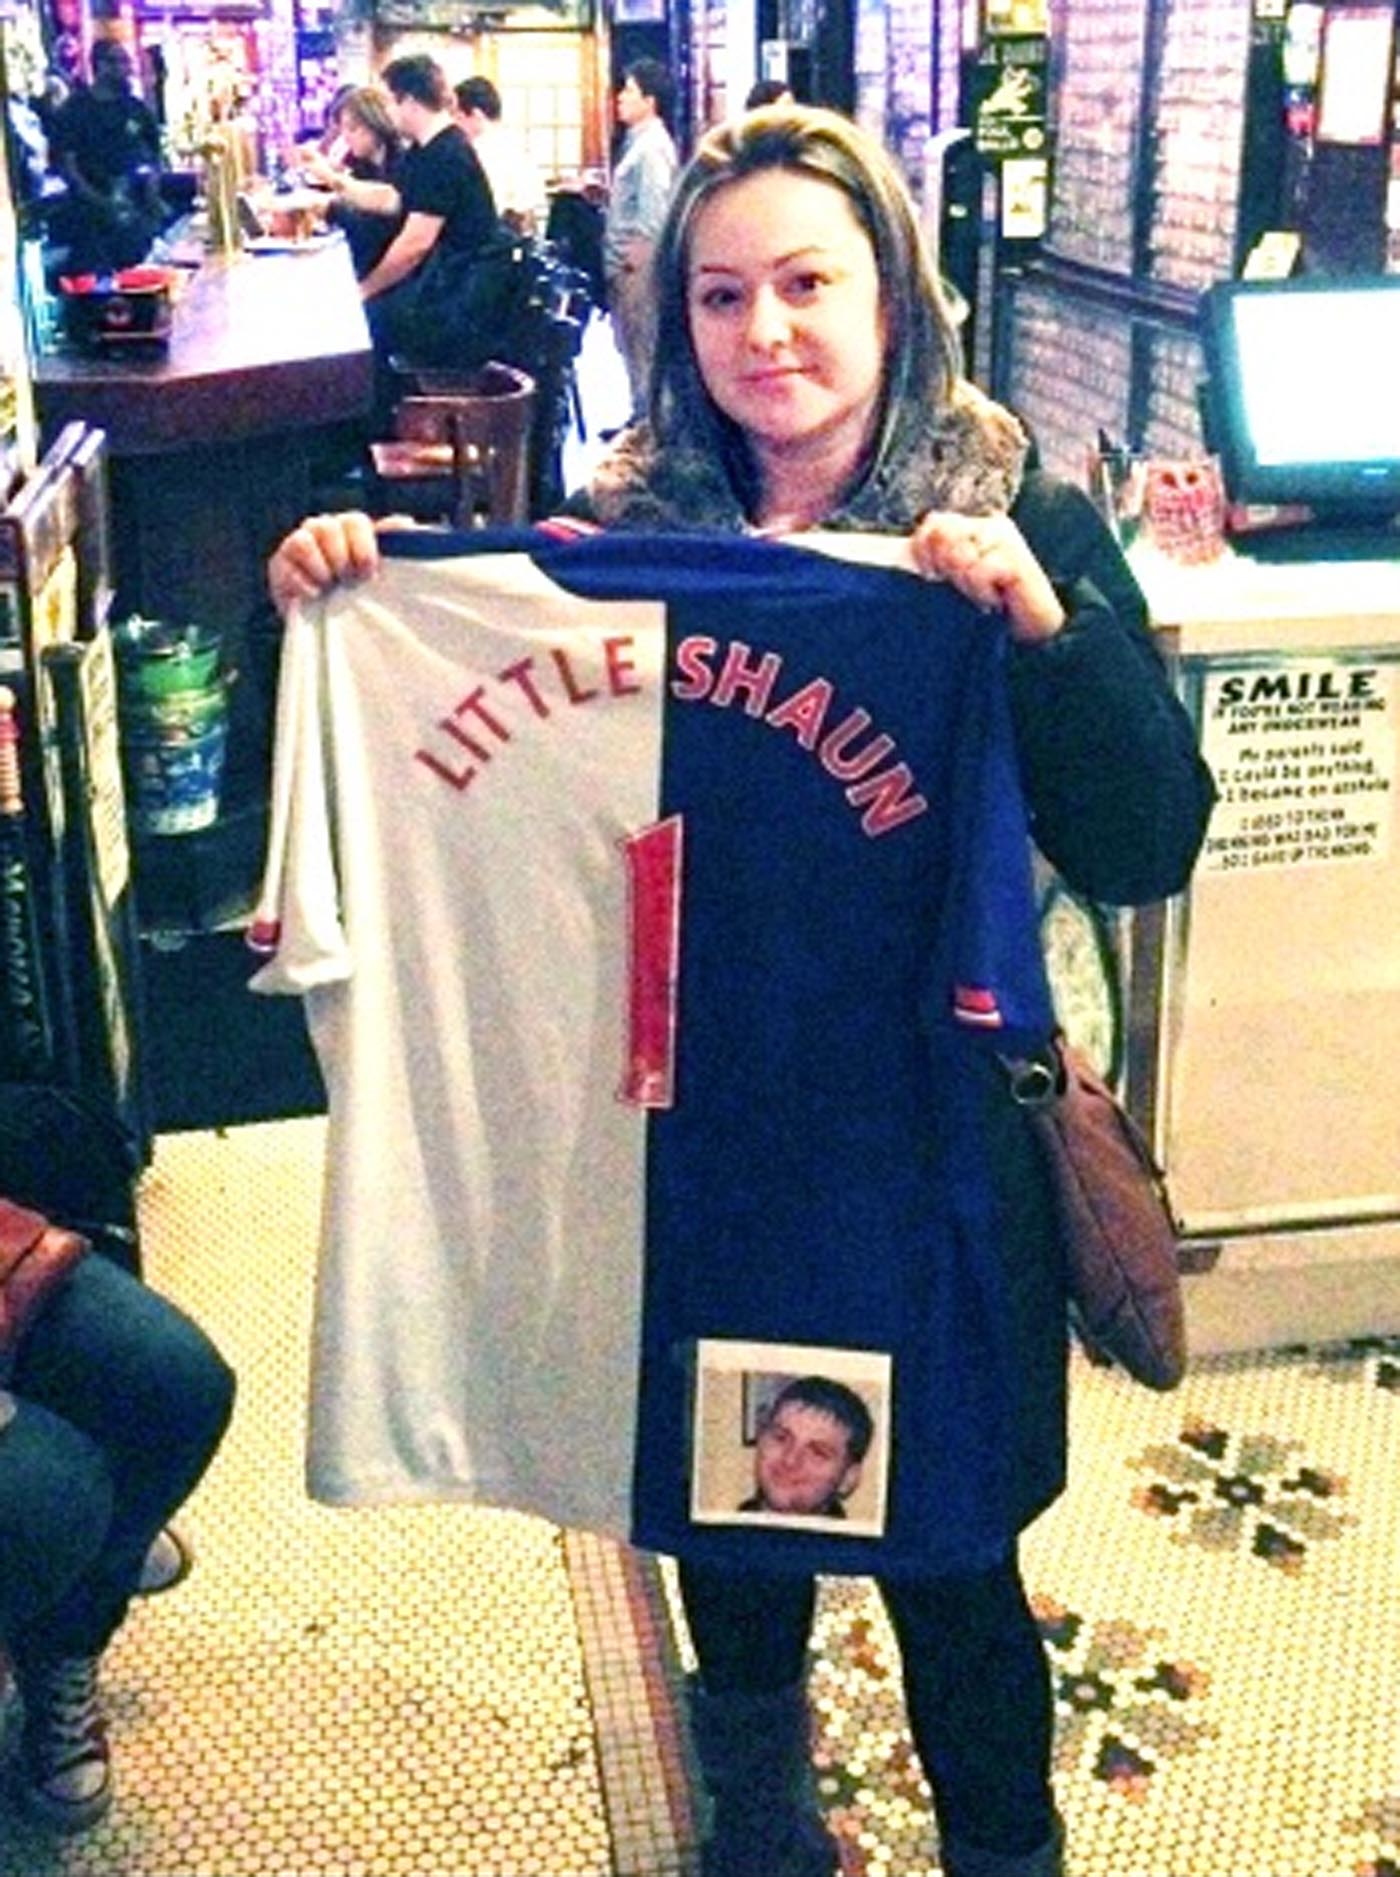 Kerry Fitzsimmons holds up Shaun Haggart's Rovers shirt in Foley's Bar, New York; inset left is Shaun